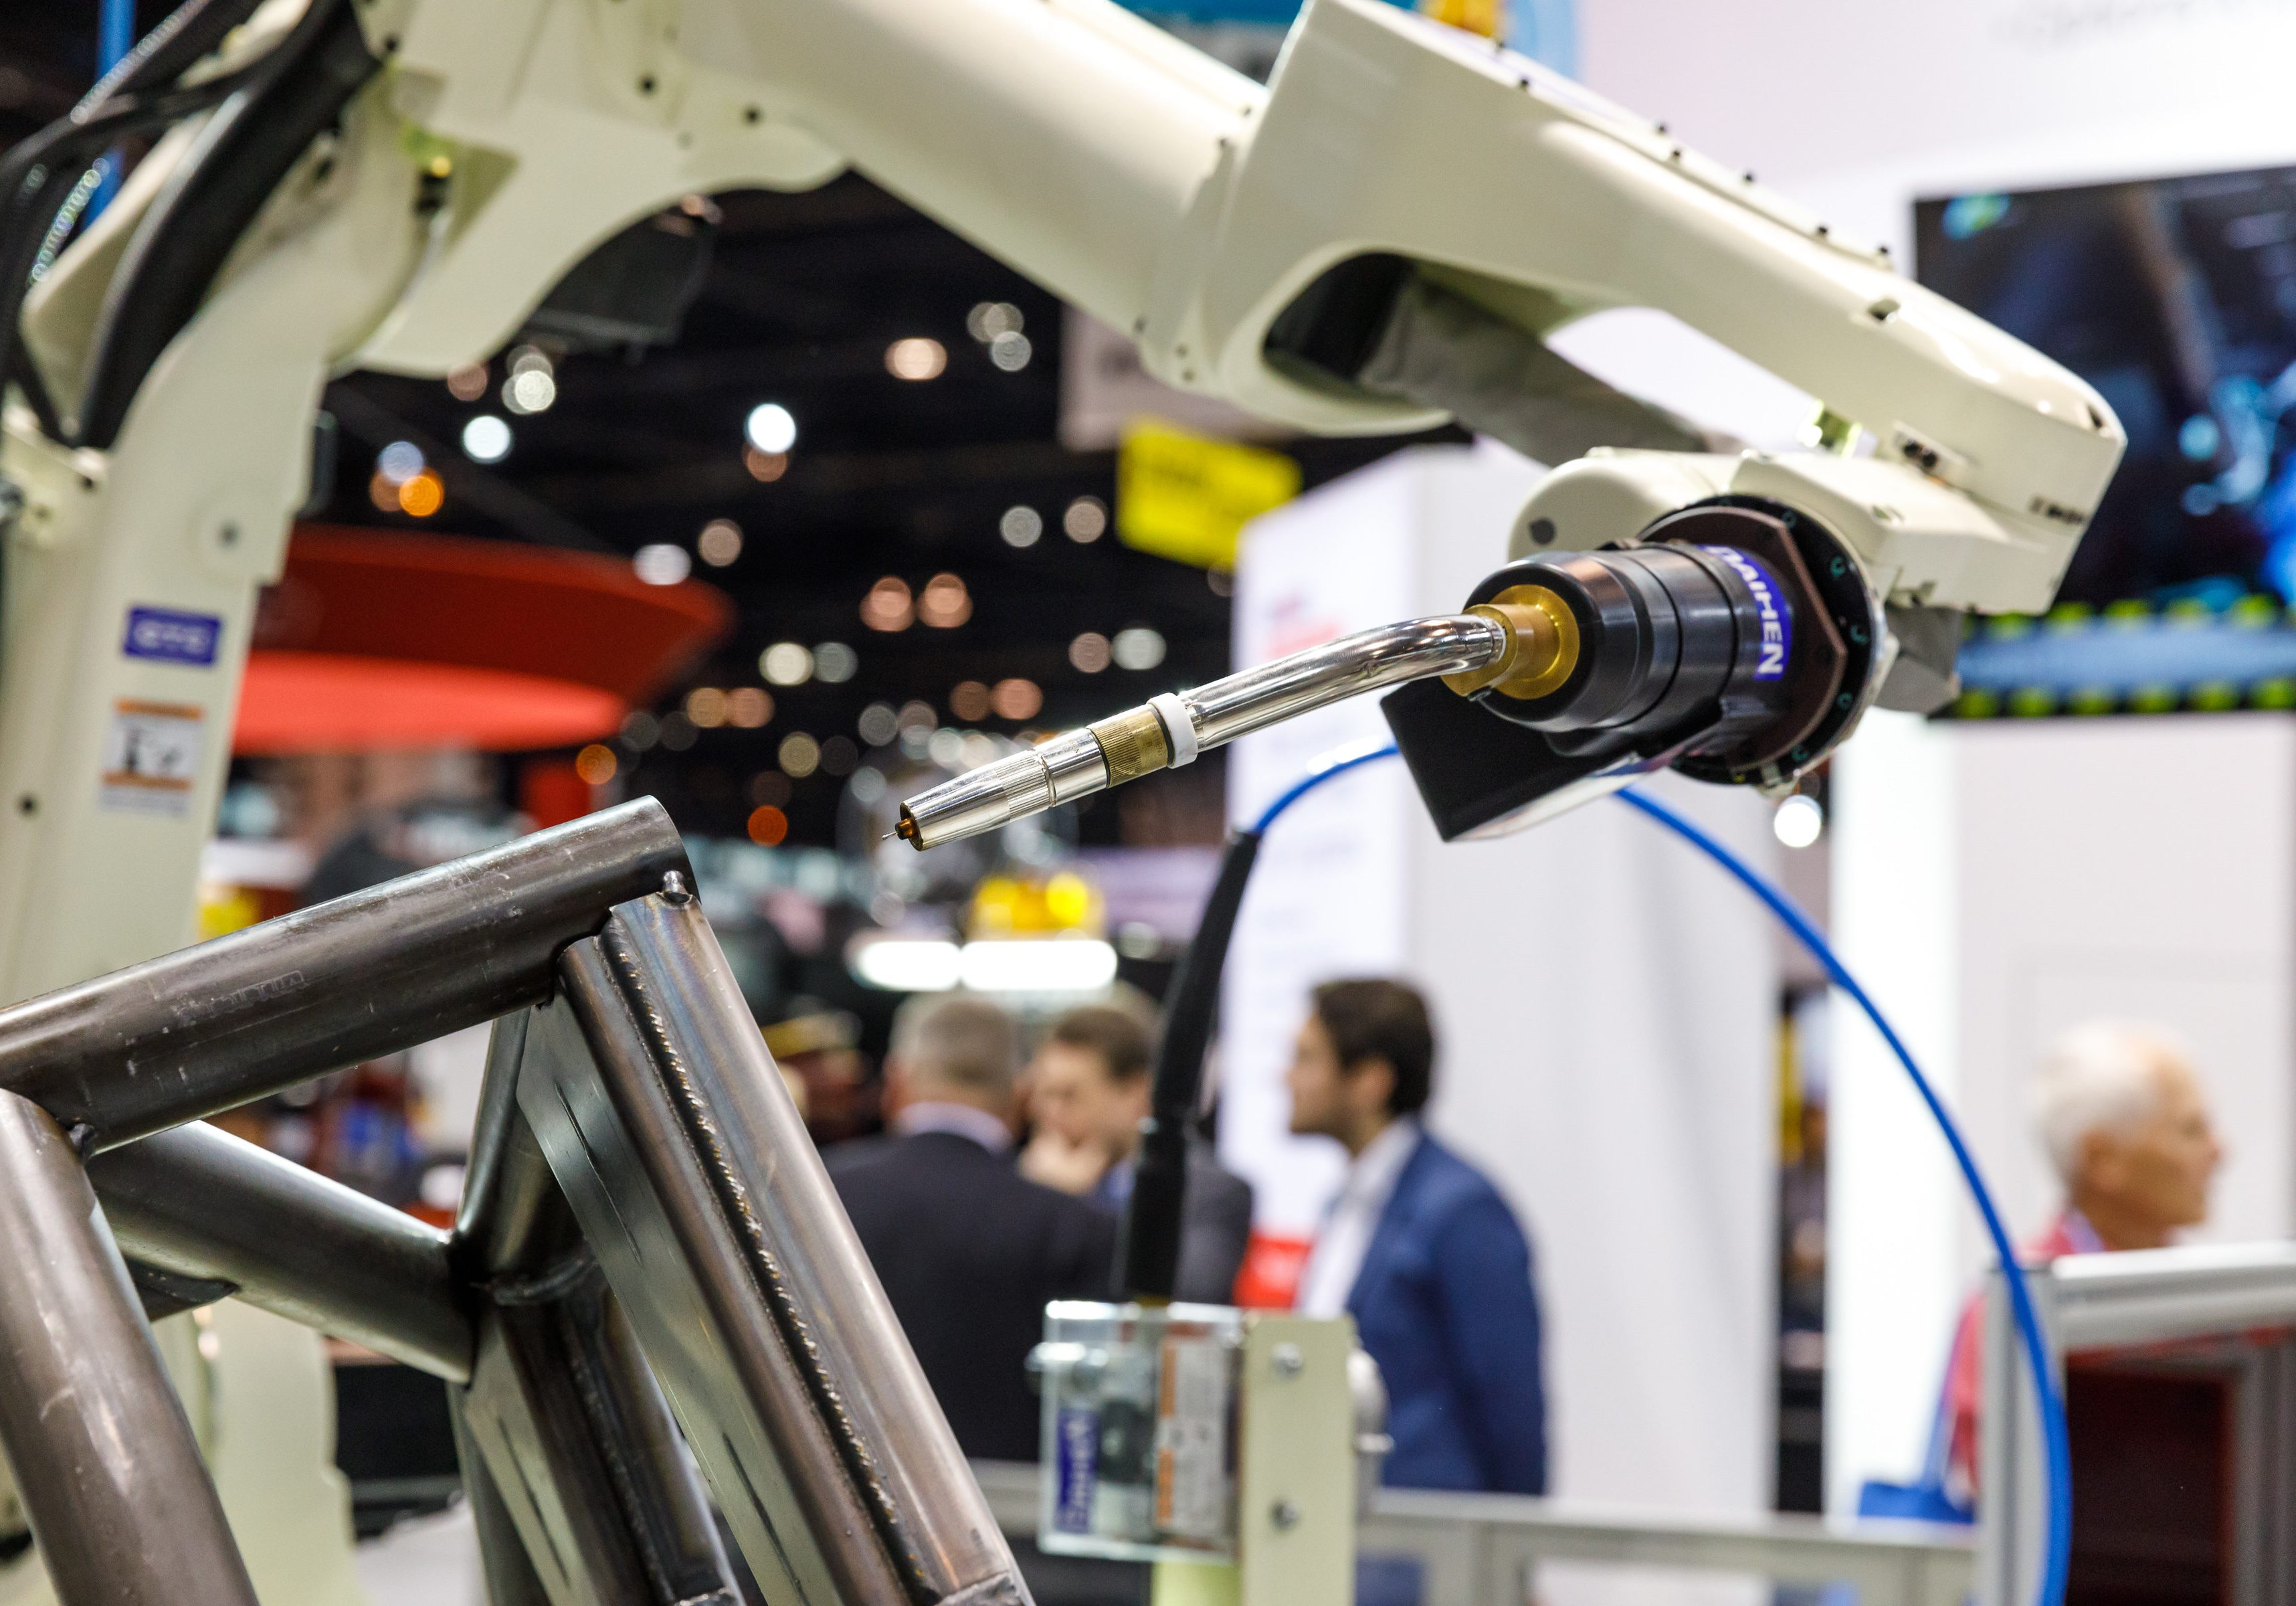 Images from FABTECH 2017 at McCormick Place in Chicago, IL.